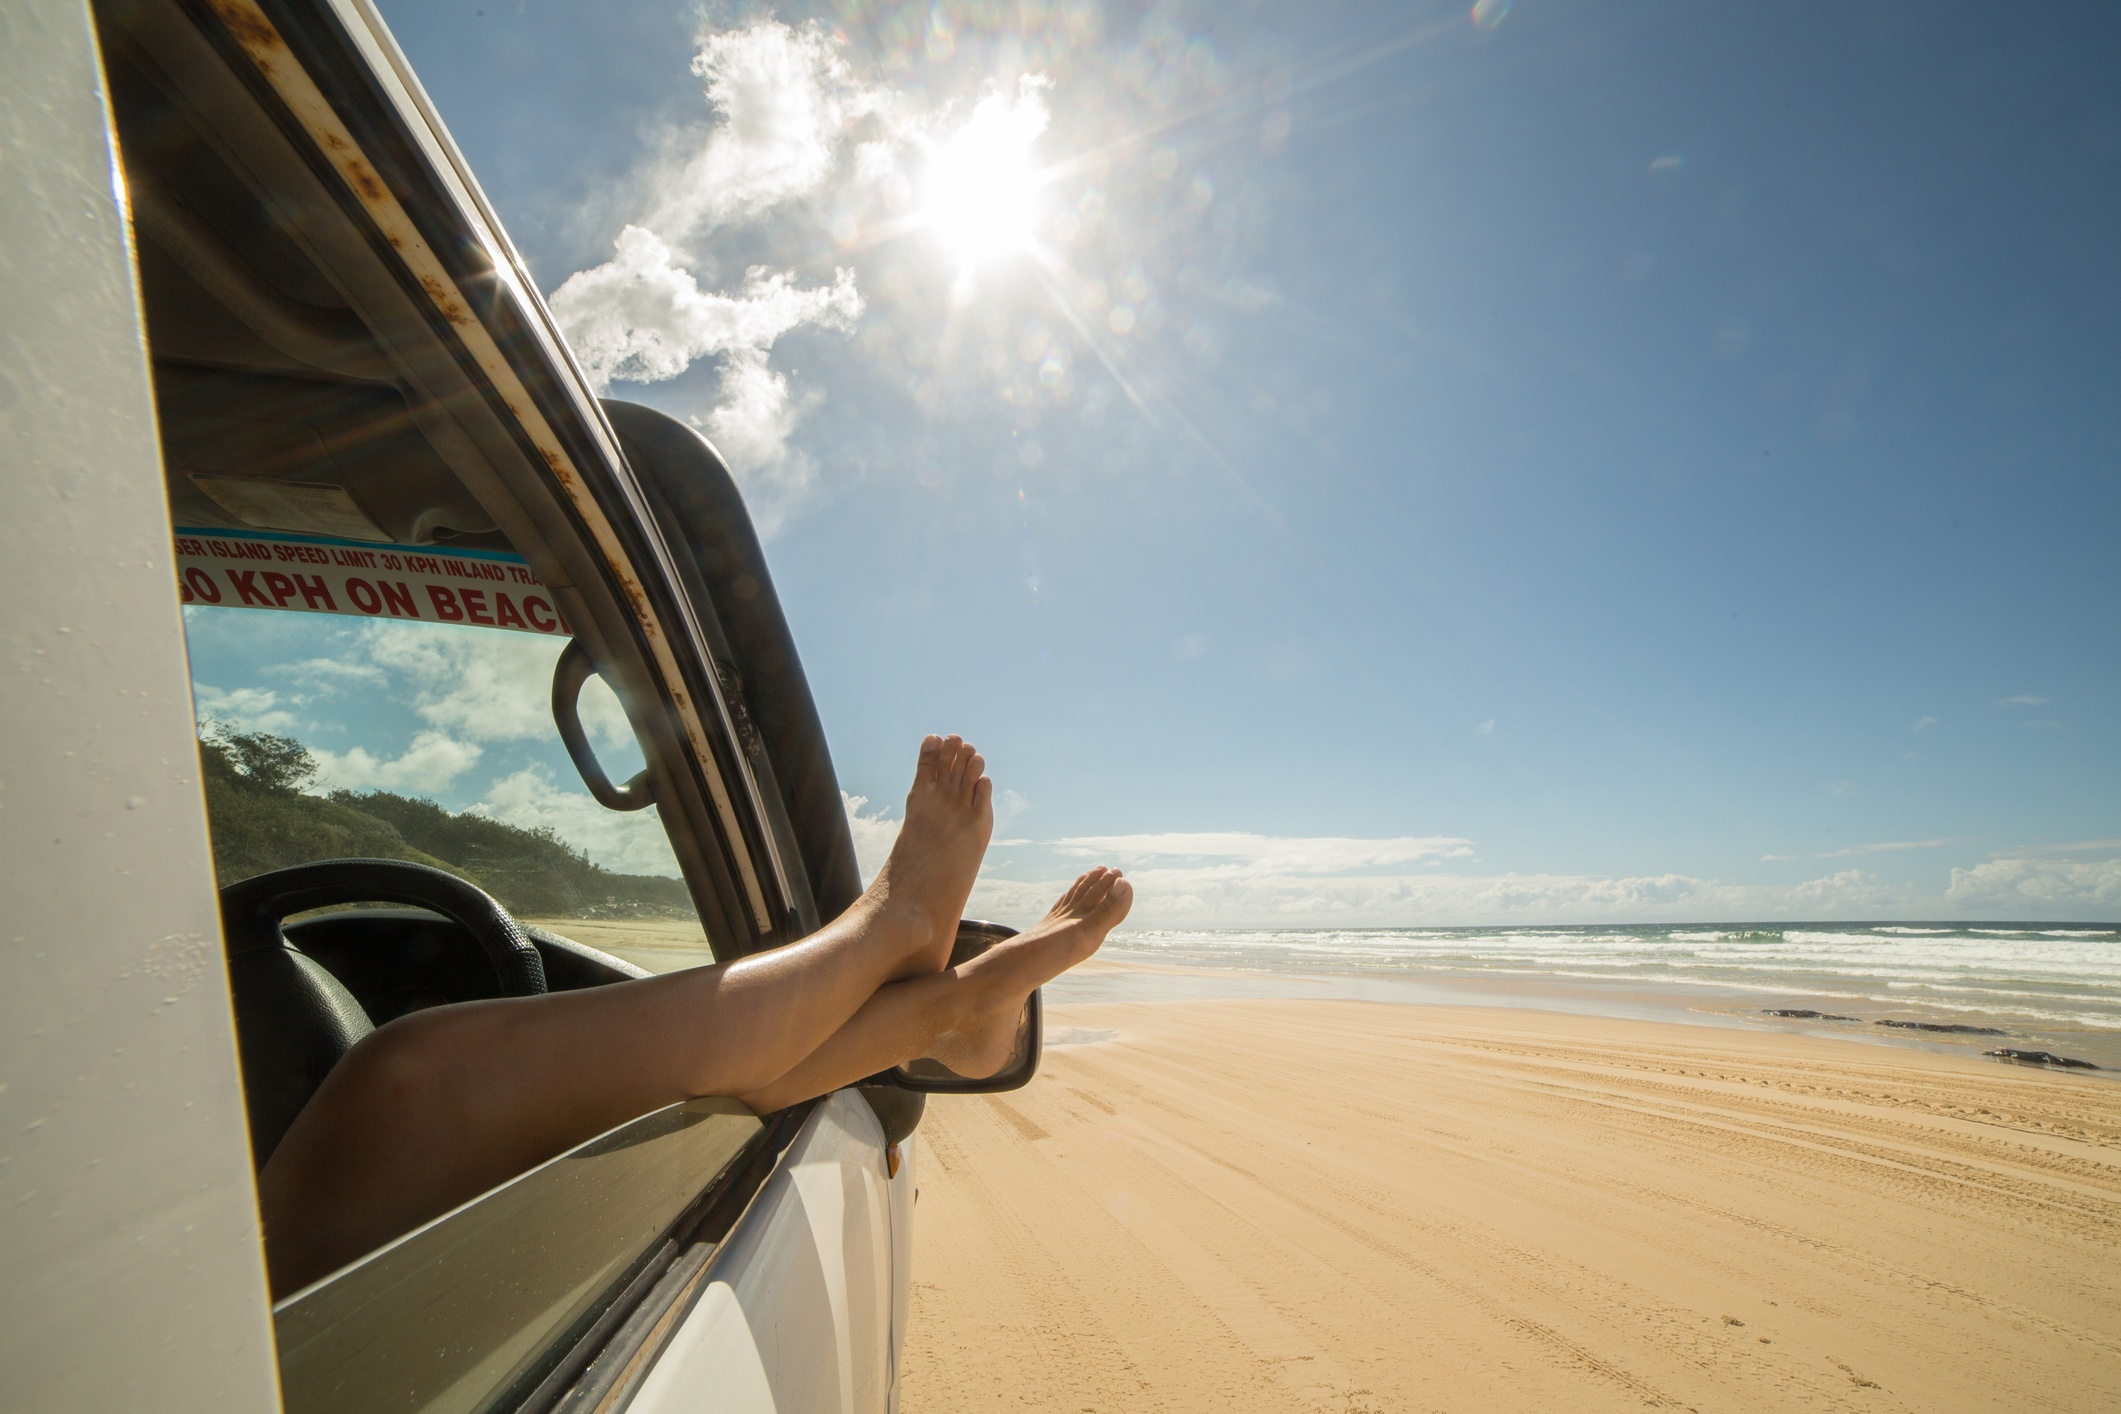 Handling annual leave is no holiday